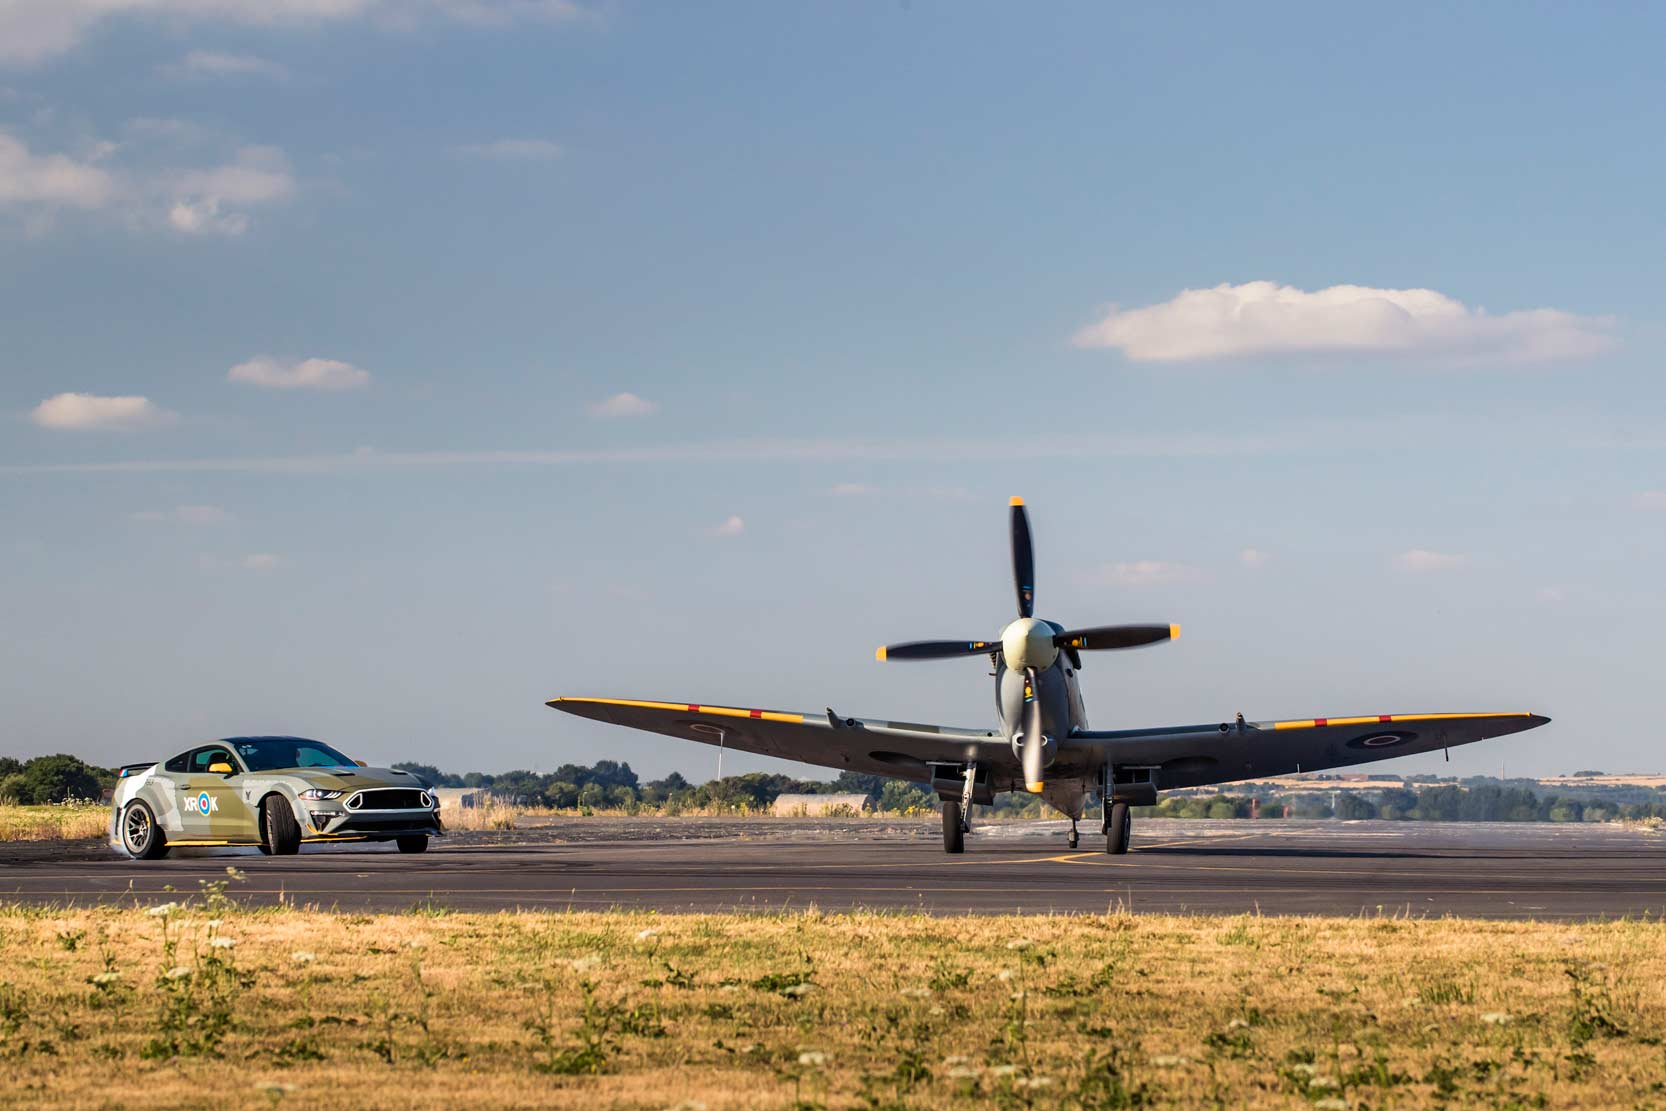 Exterieur_Ford-Mustang-GT-Eagle-Squadron-Spitfire_7